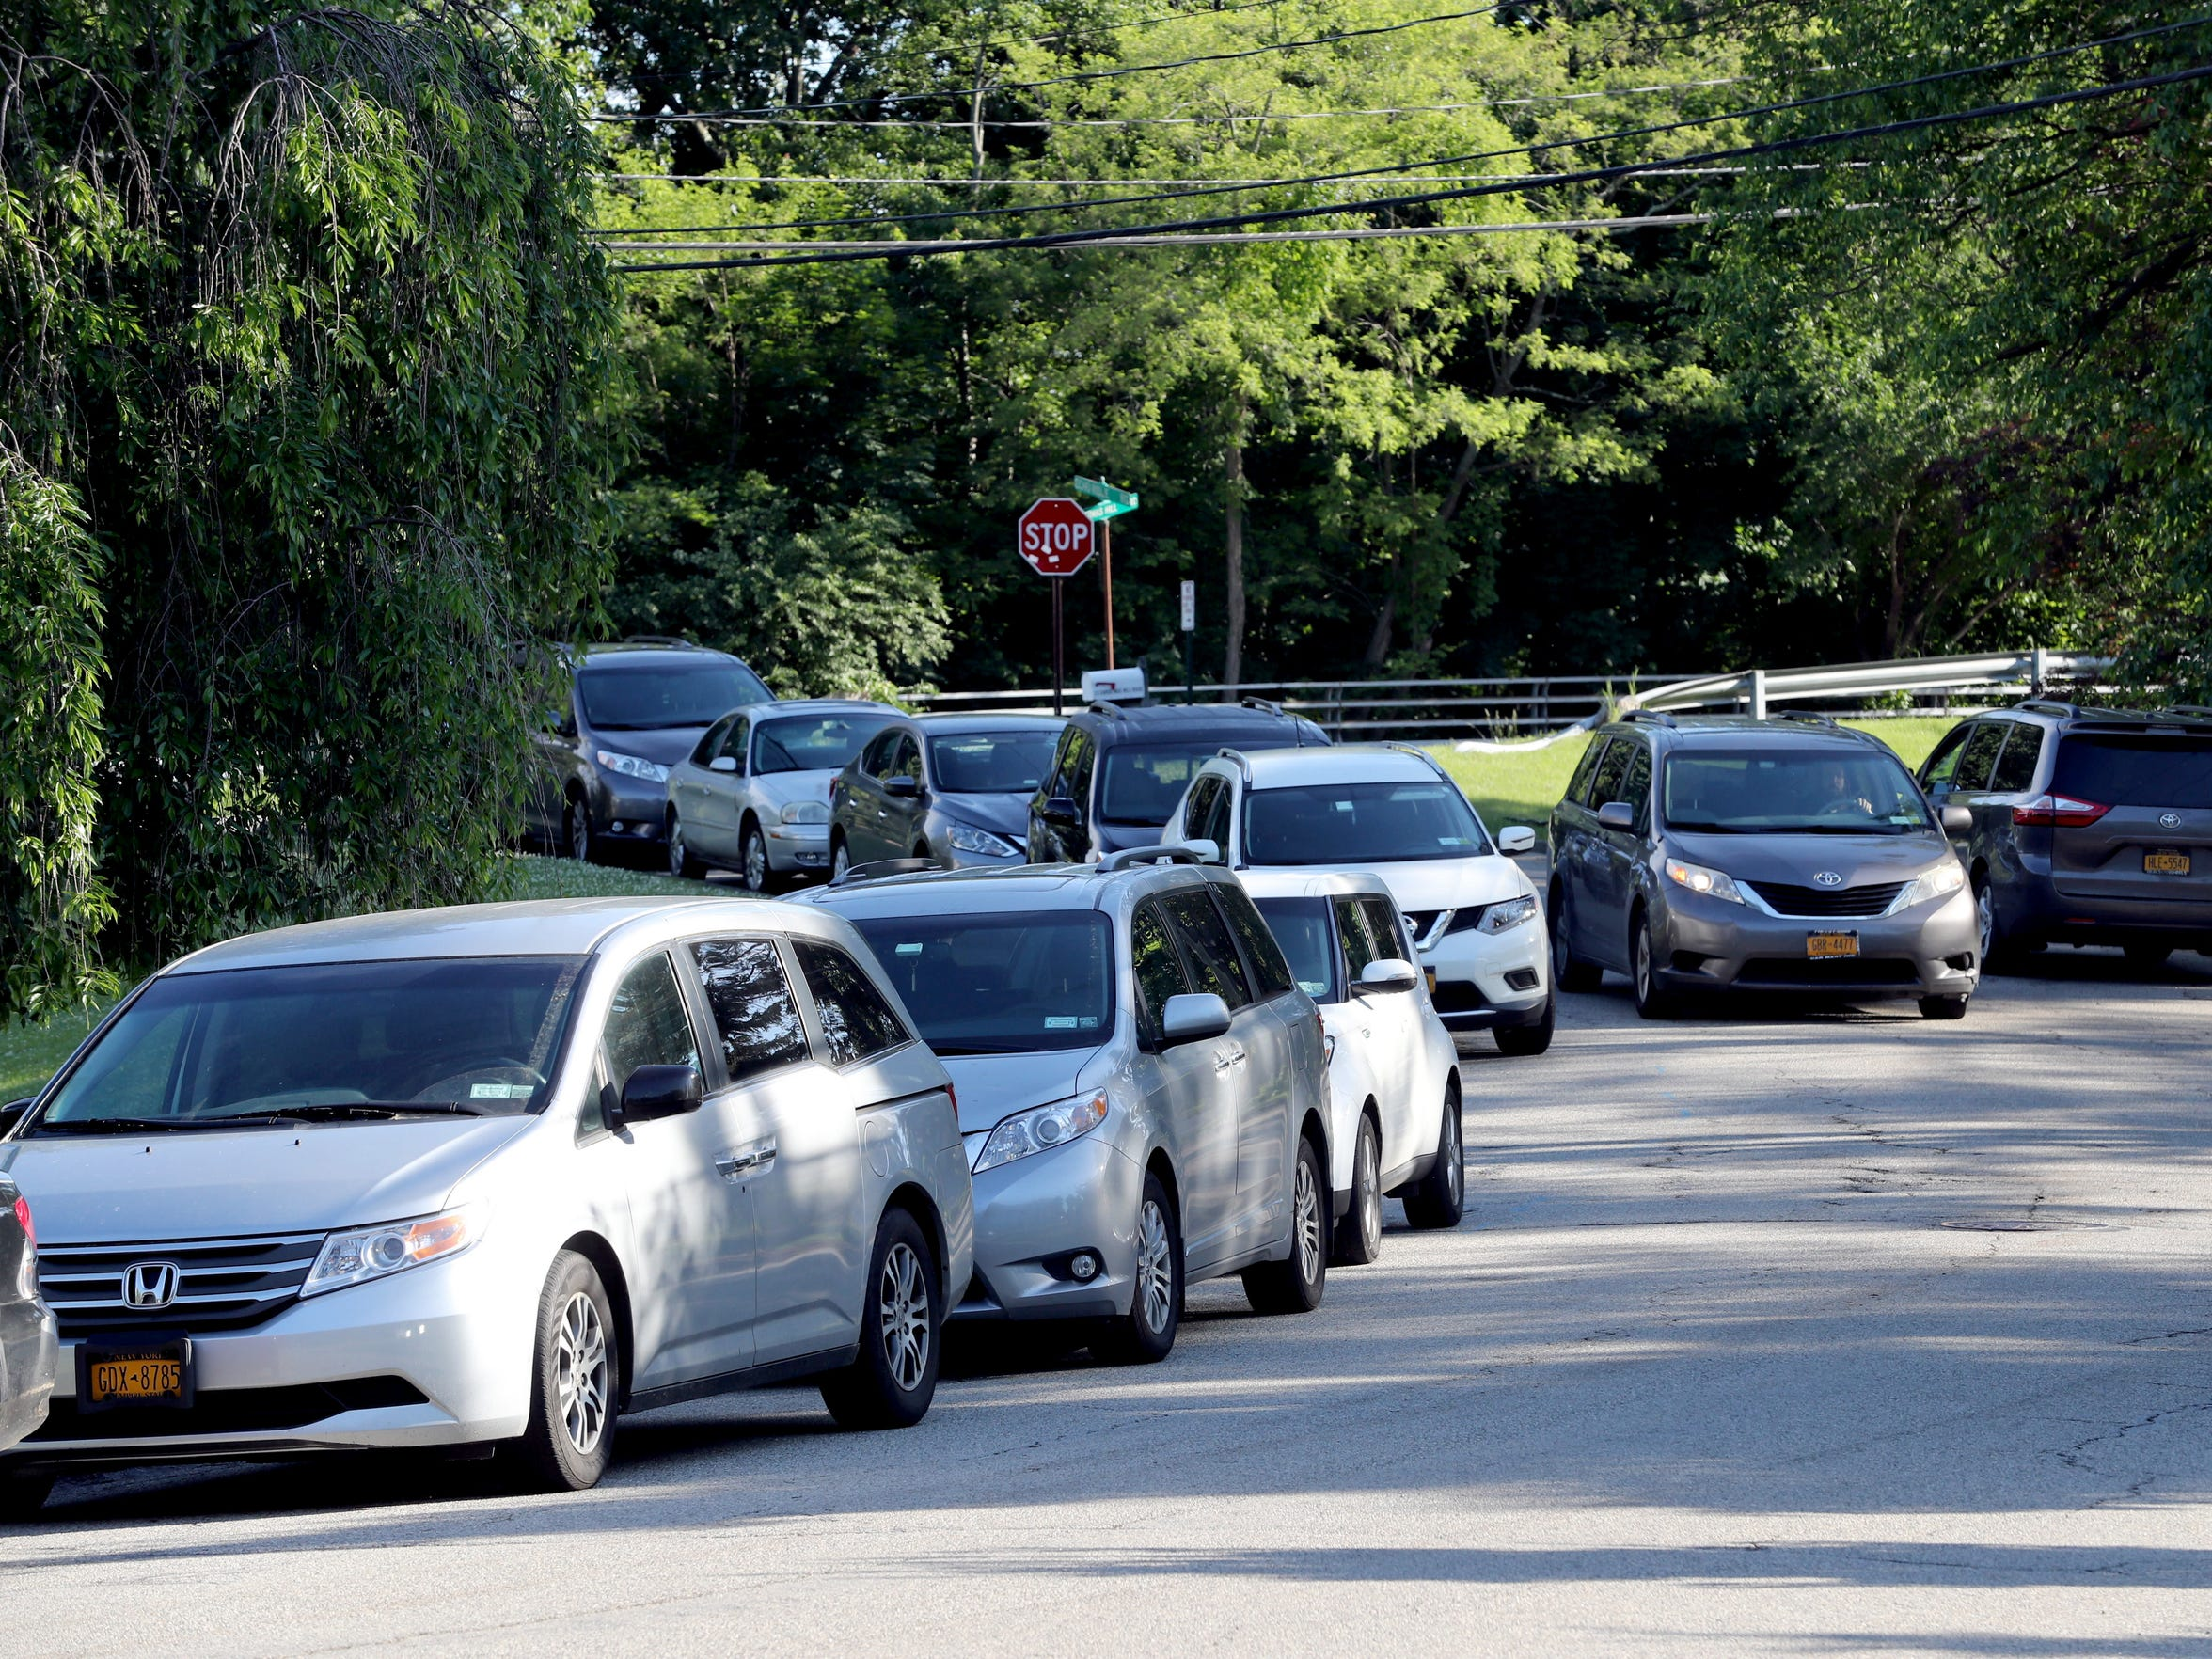 Cars pass each other on Echo Ridge Road in Airmont, across from Bais Hamedrash Radashitz, an Orthodox synagogue, during the morning hours of June 5, 2018. Congregants of the synagogue park on the street when the parking lot at the synagogue is filled during morning worship six days a week.